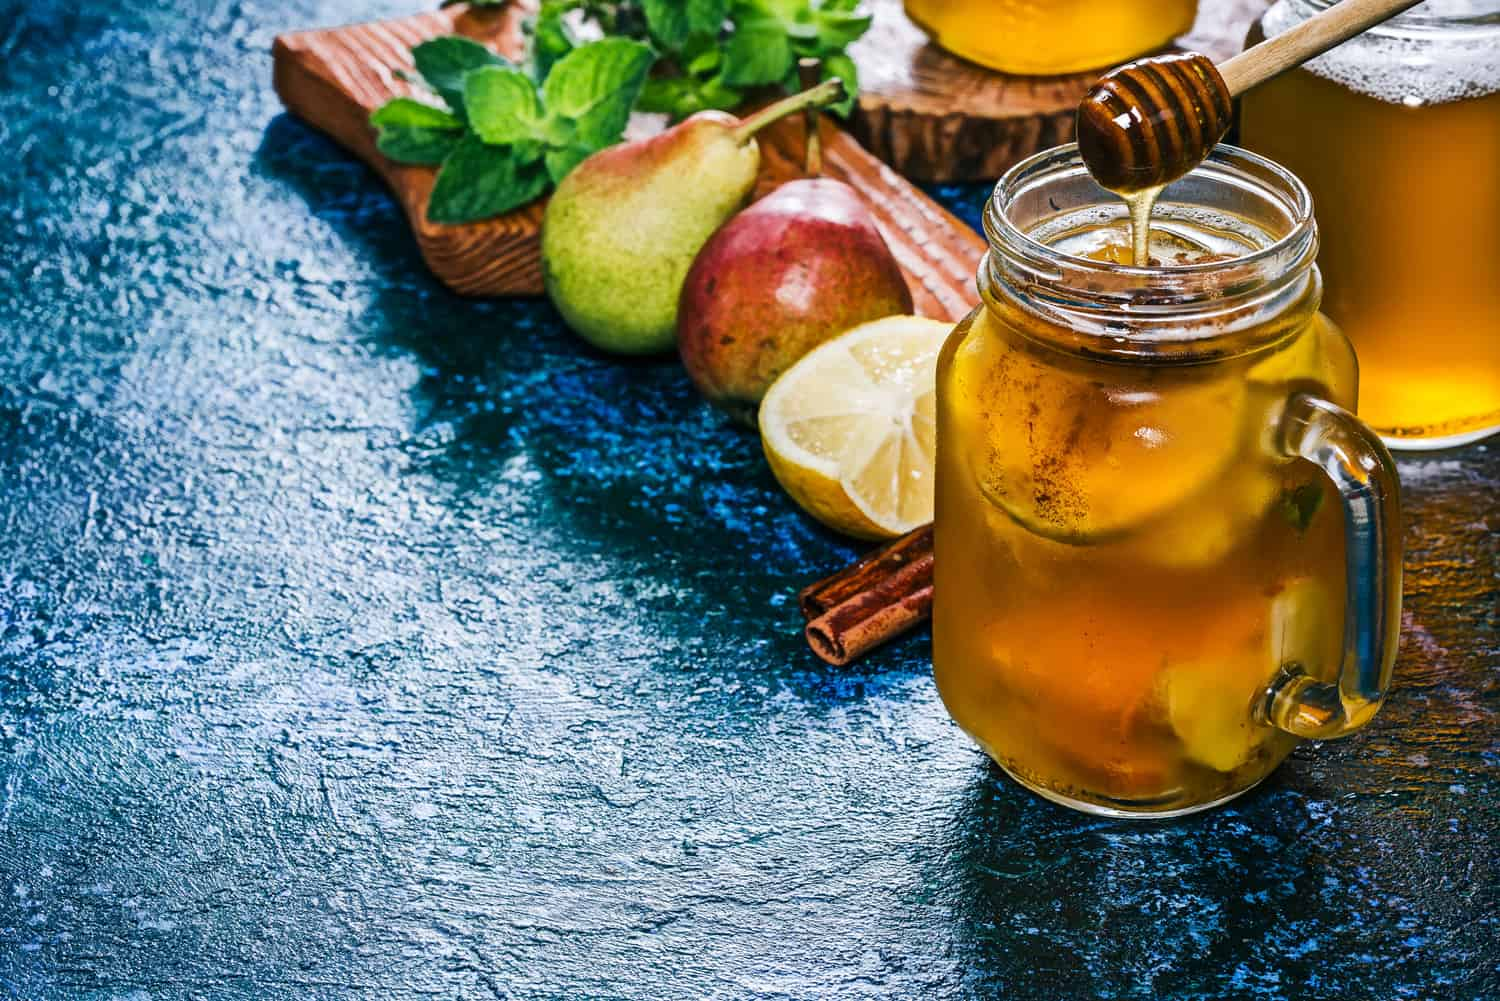 Sangria with pear cider, fresh pears and lemon, honey and cinnamon in mason jar with ingredients. Spotty blue background.